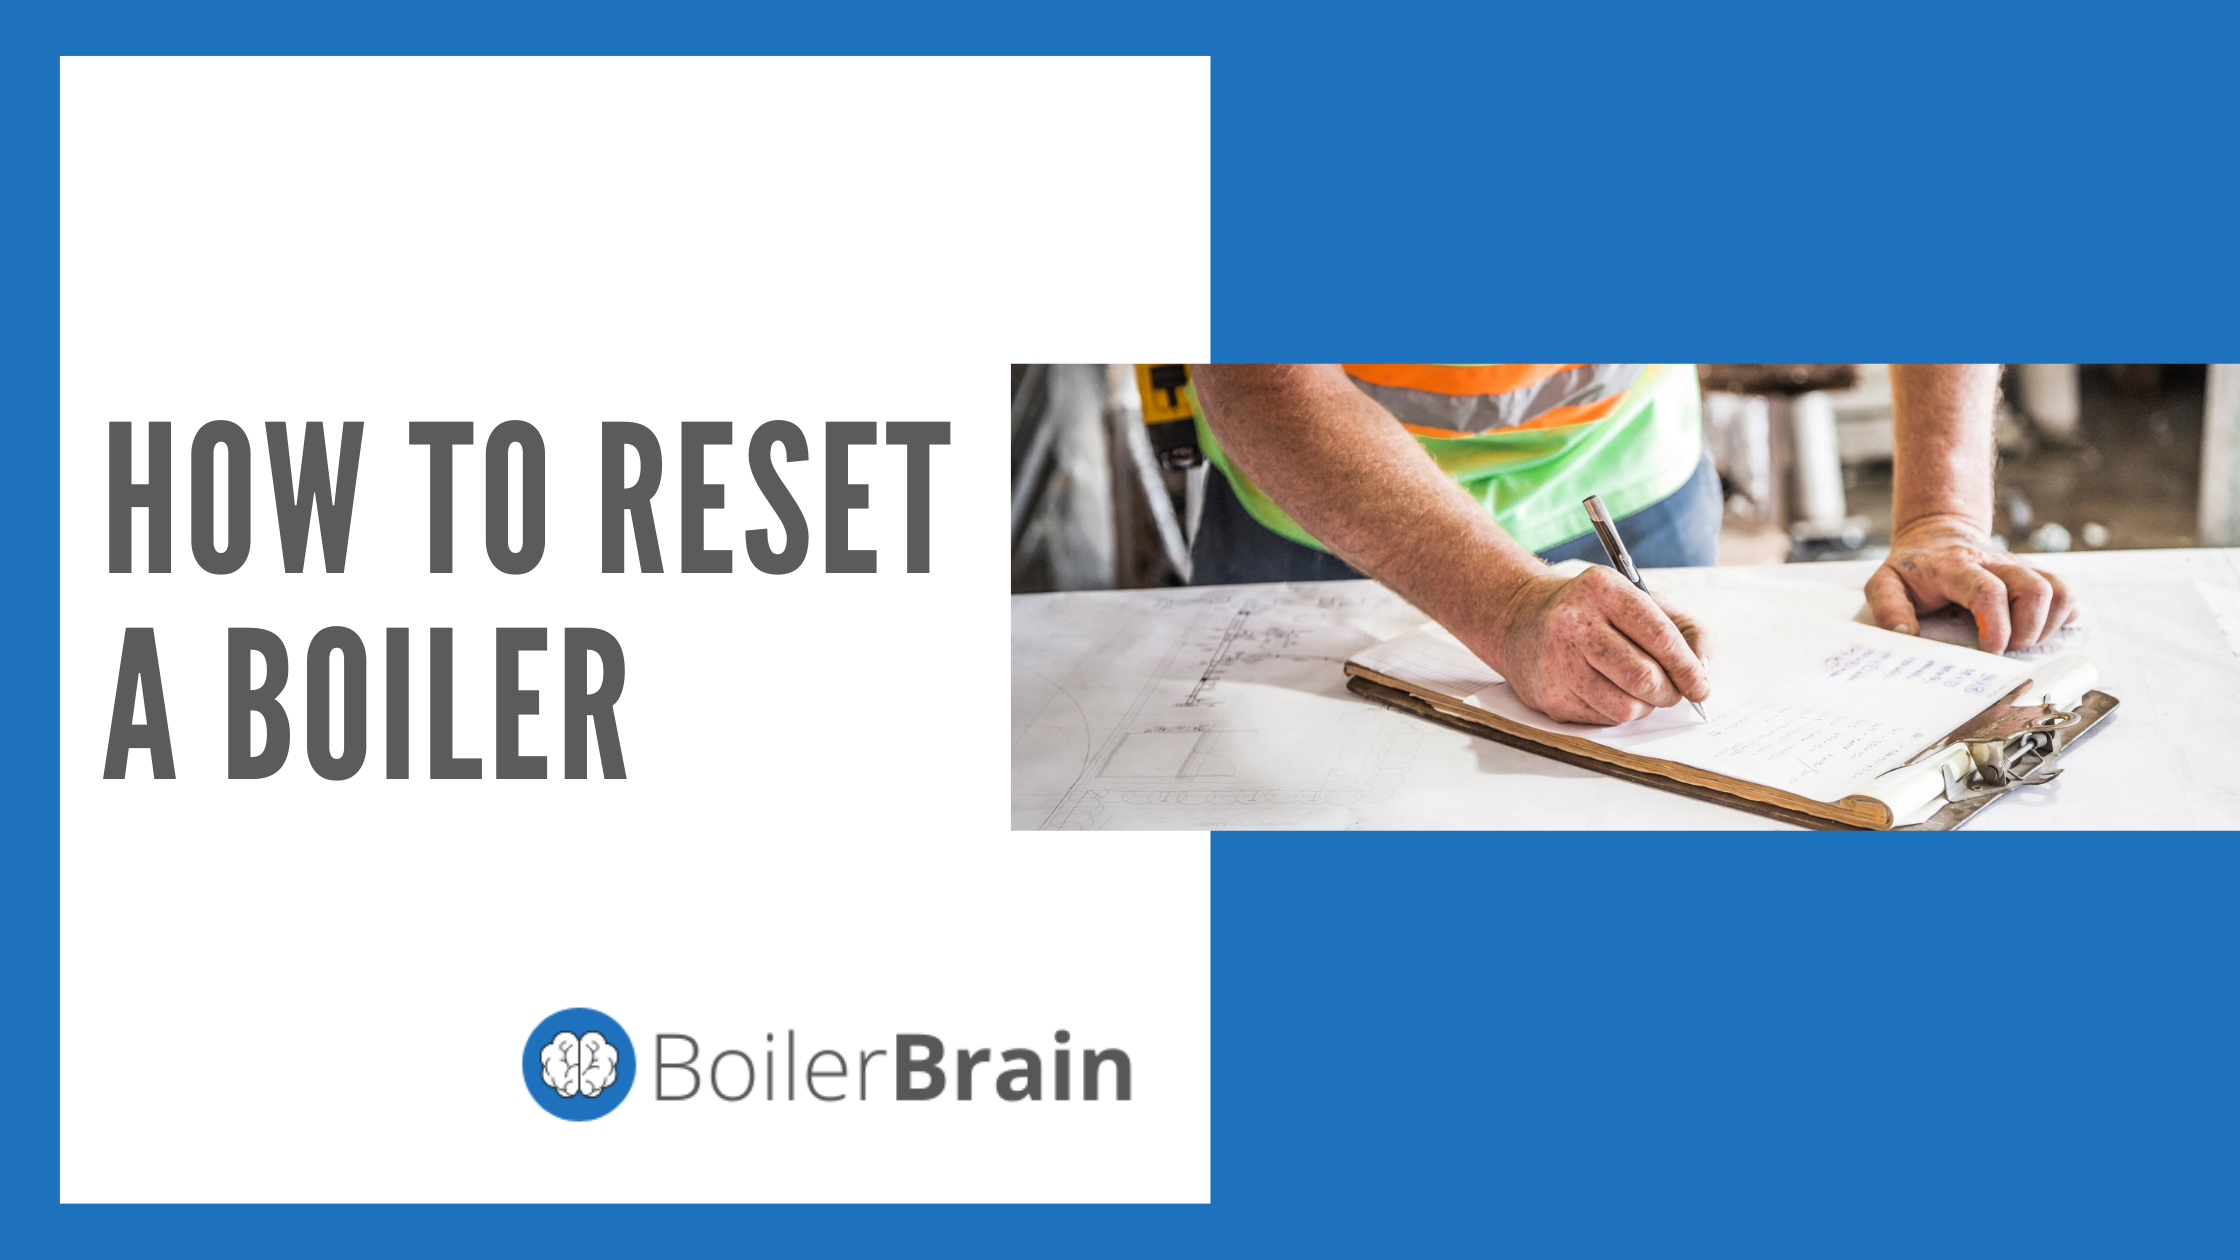 How to Reset a Boiler